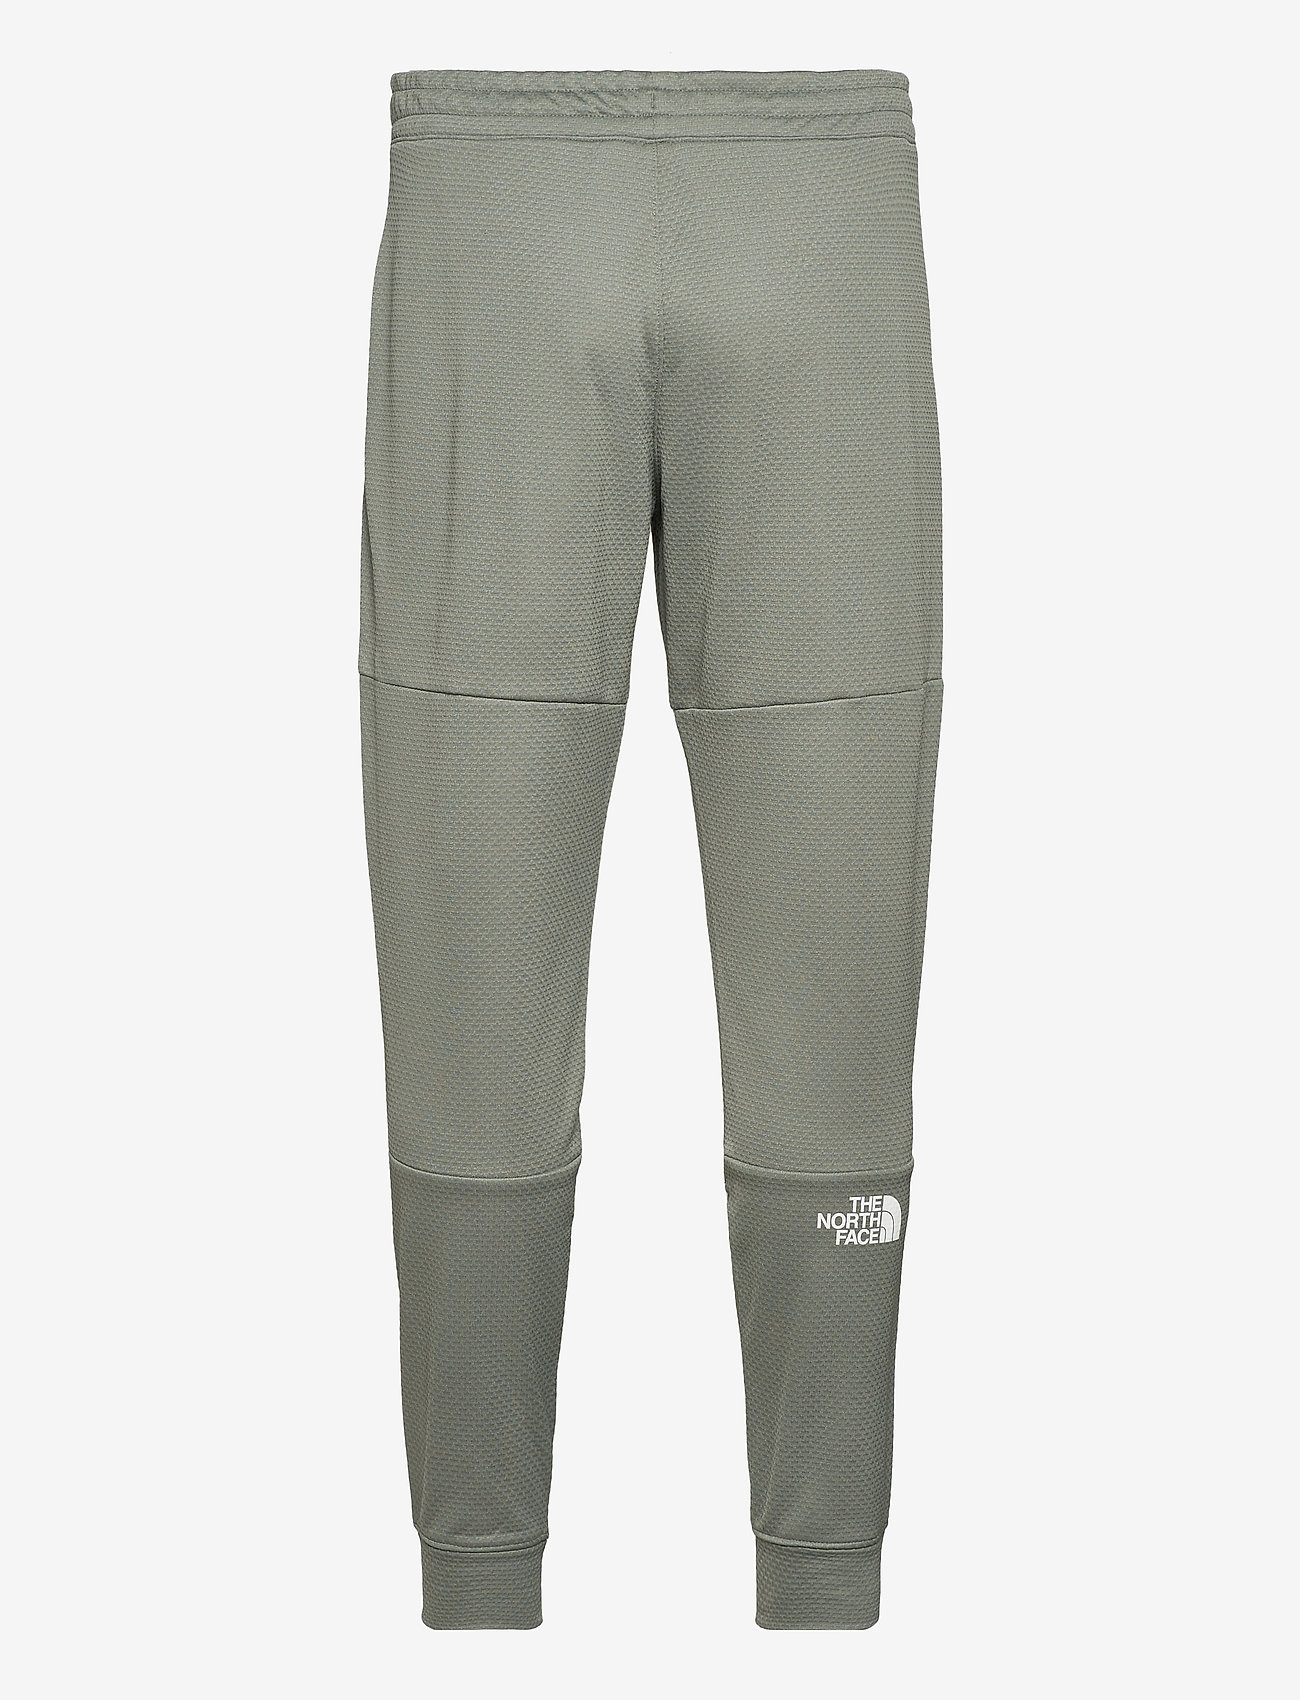 The North Face - M MA PANT - outdoorbukser - agave green - 1